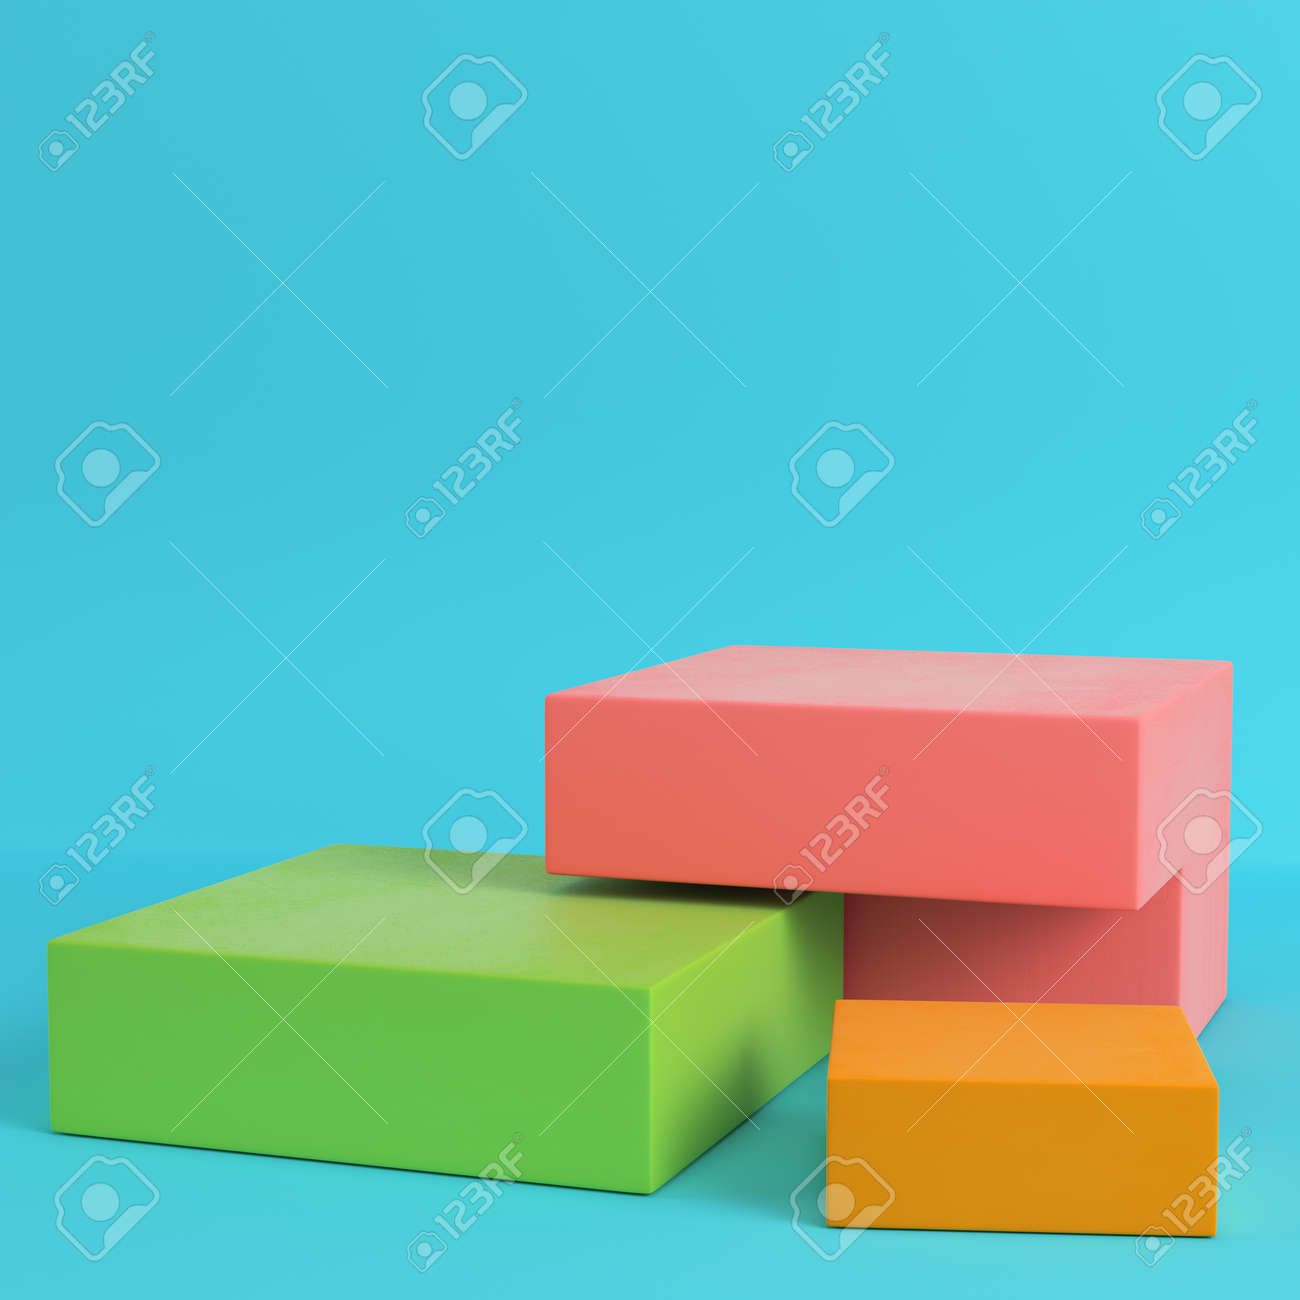 Colorfull boxes on bright blue background in pastel colors. Minimalism concept. 3d render - 94740804